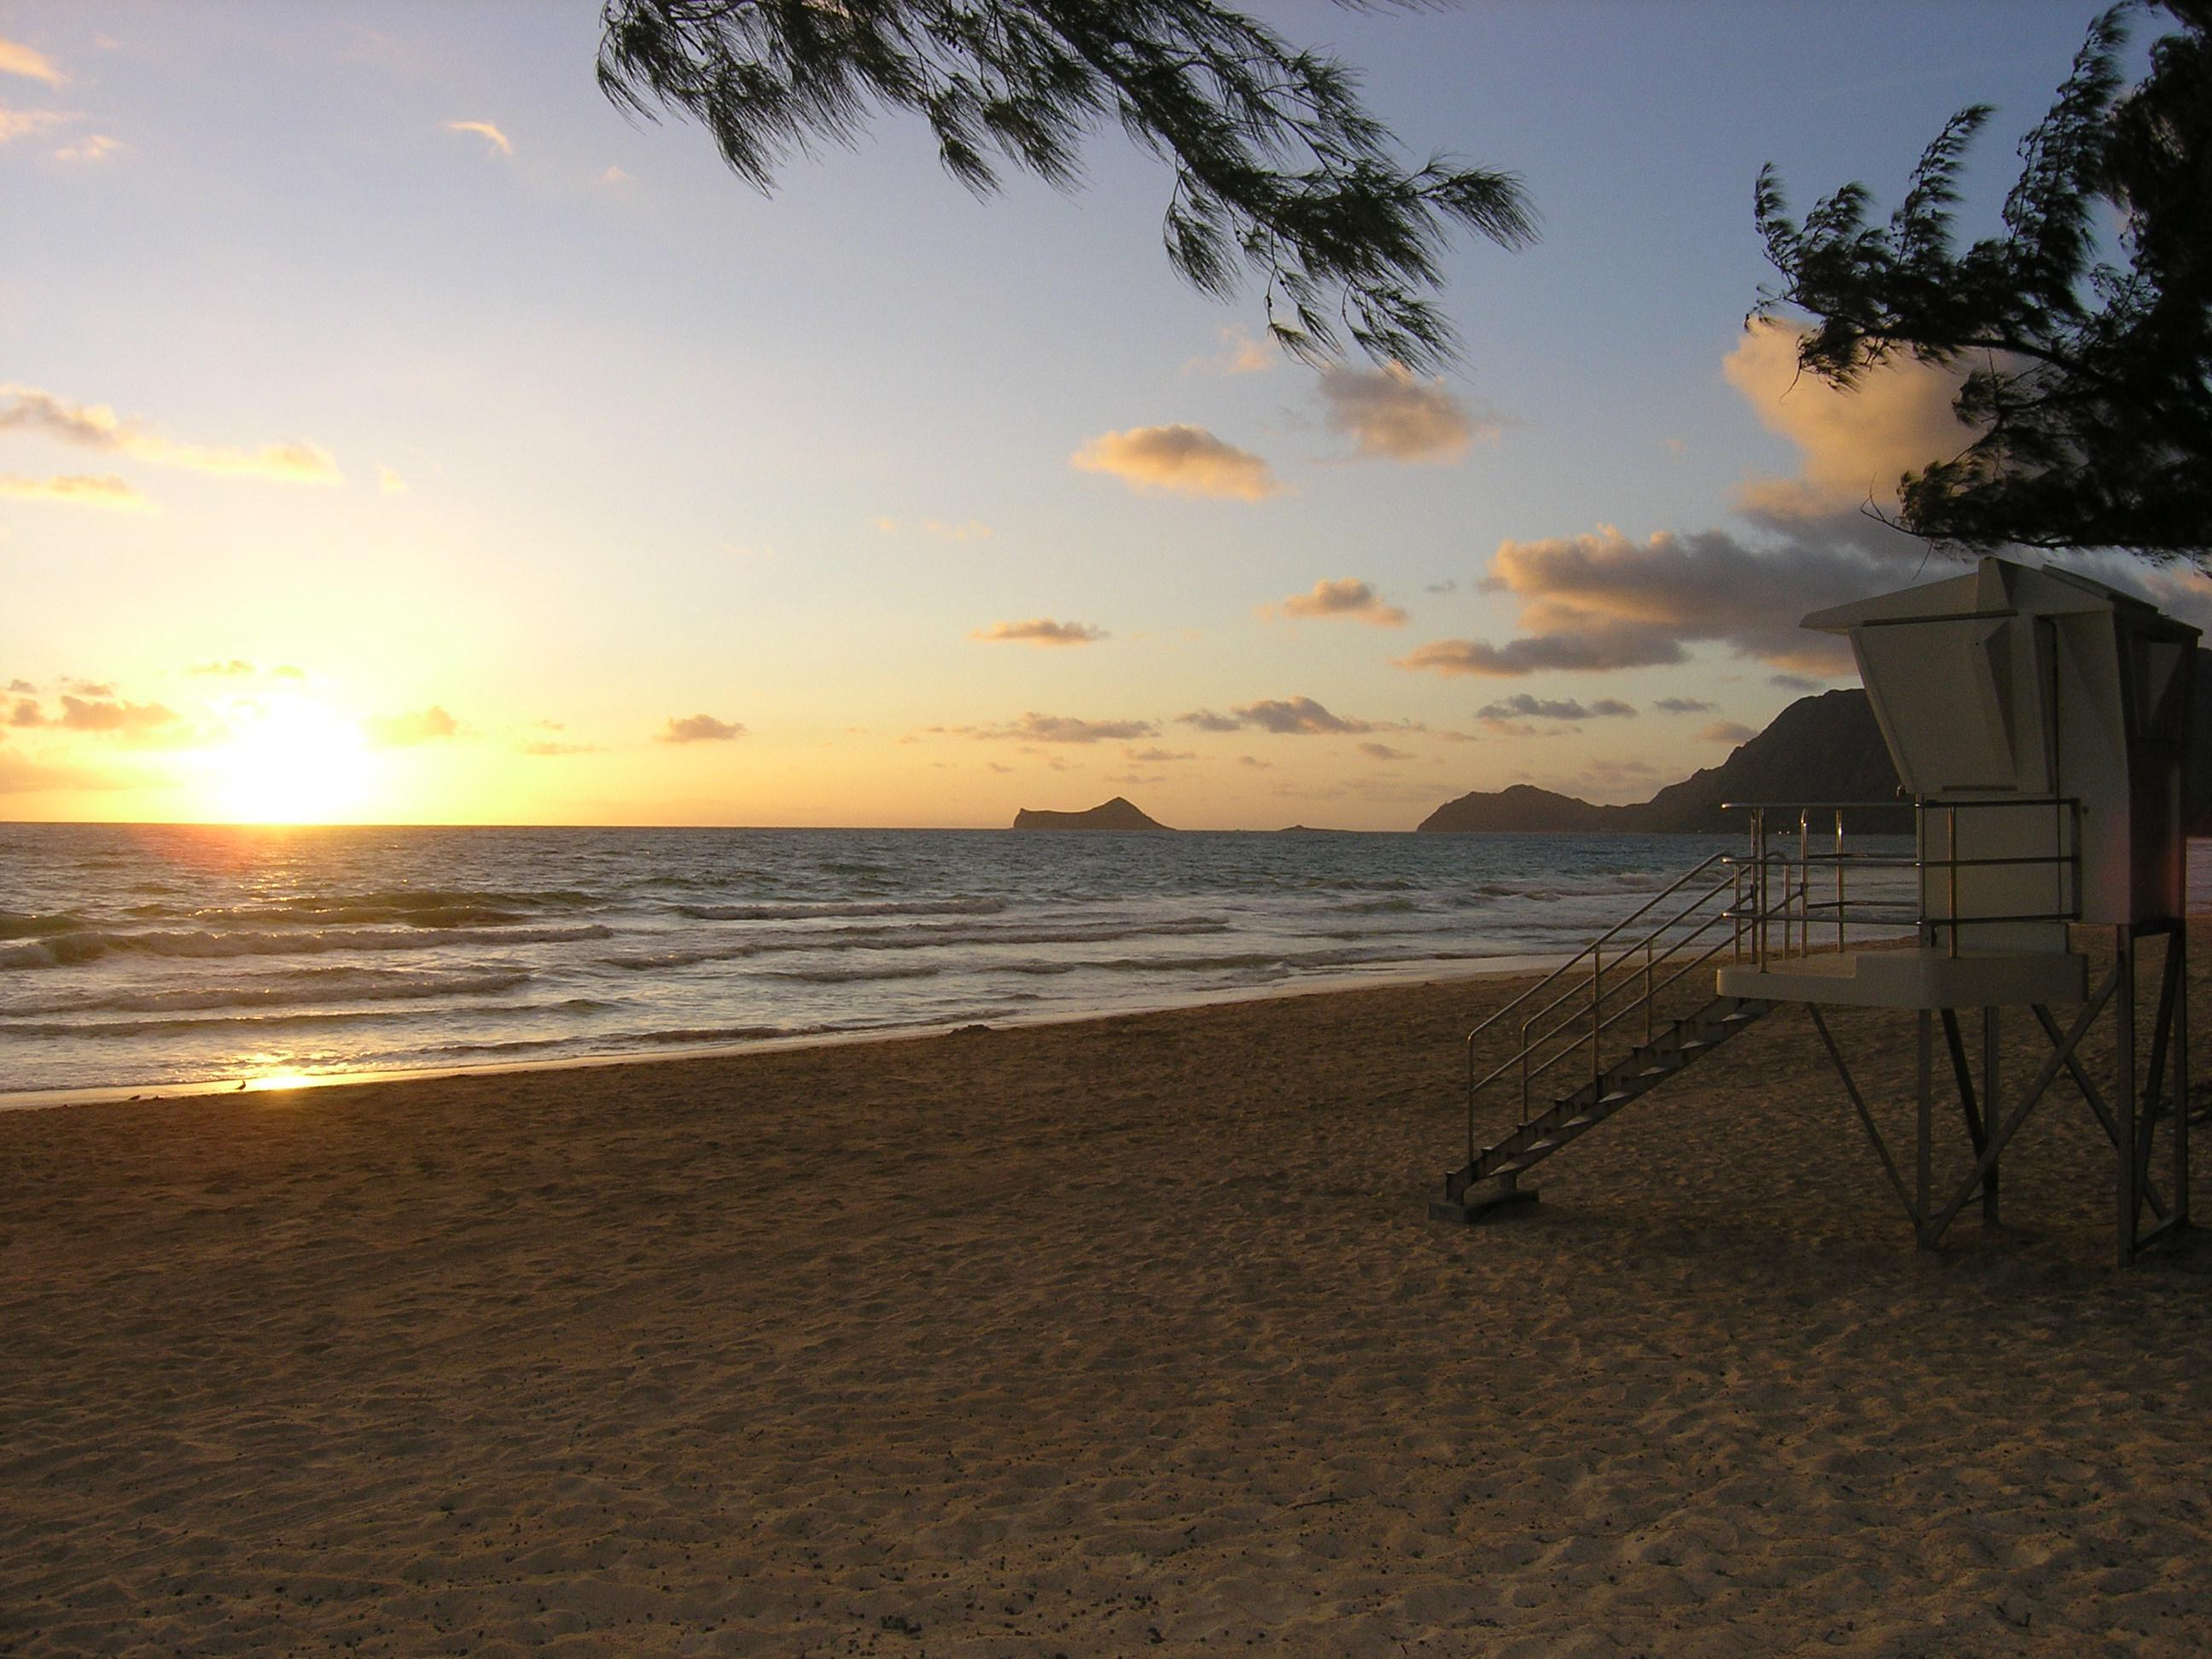 """Oahu Windward (East) Shore<br/>Photo <a href=""""//creativecommons.org/licences/by/3.0/"""" class=""""cc-small"""" target=""""_blank""""><img typeof=""""foaf:Image"""" class=""""image-style-none"""" src=""""https://i.creativecommons.org/l/by/3.0/80x15.png"""" width=""""80px"""" height=""""15px"""" alt=""""Creative Commons Licence"""" /></a> <a href=""""http://www.flickr.com/photos/44185395@N00/3583345849/"""">IdahoBoy</a>"""